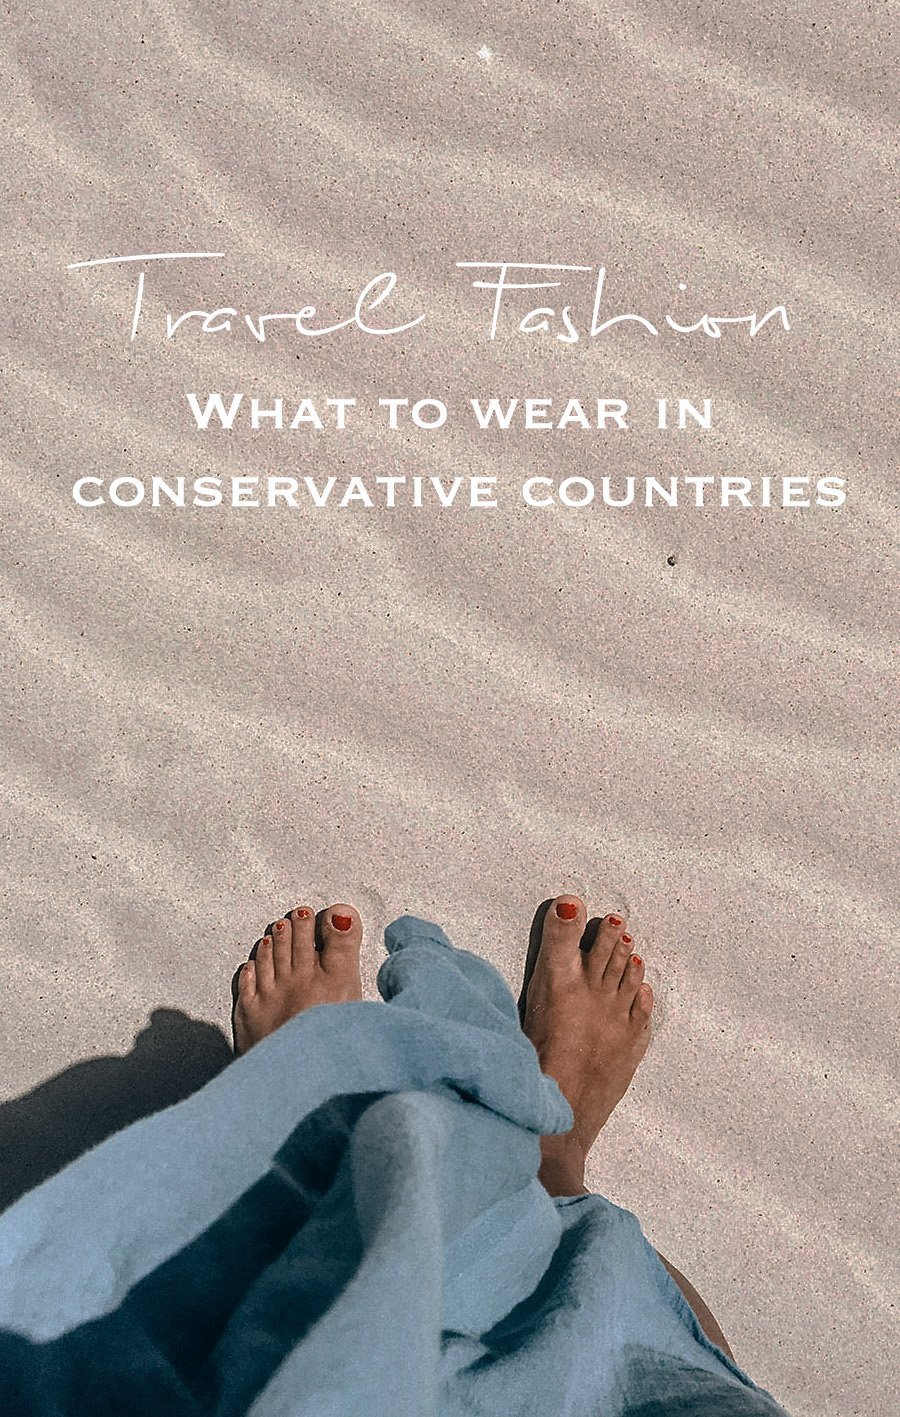 Packing for a conservative, but hot and humid country? Some travel fashion and tips on what to wear in India, Morocco & Co.